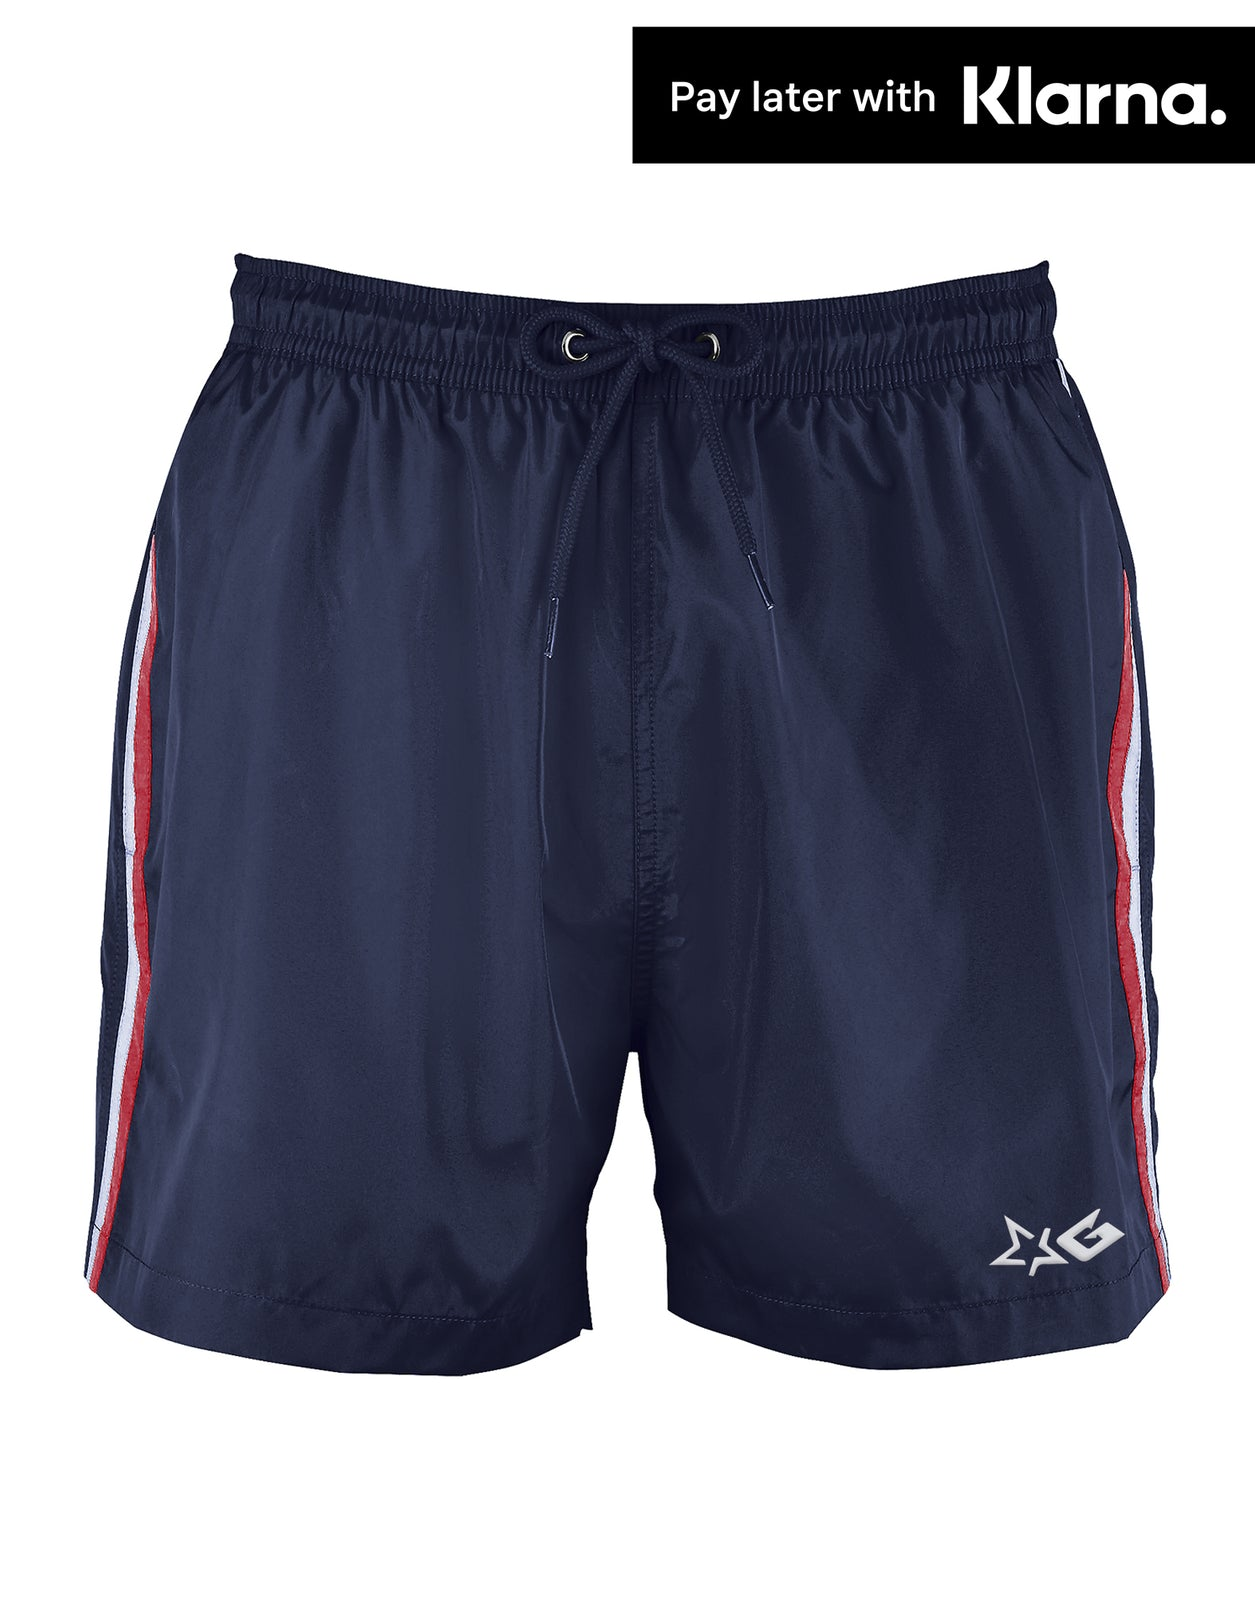 Navy Gripp Troika Swim Shorts - Front View